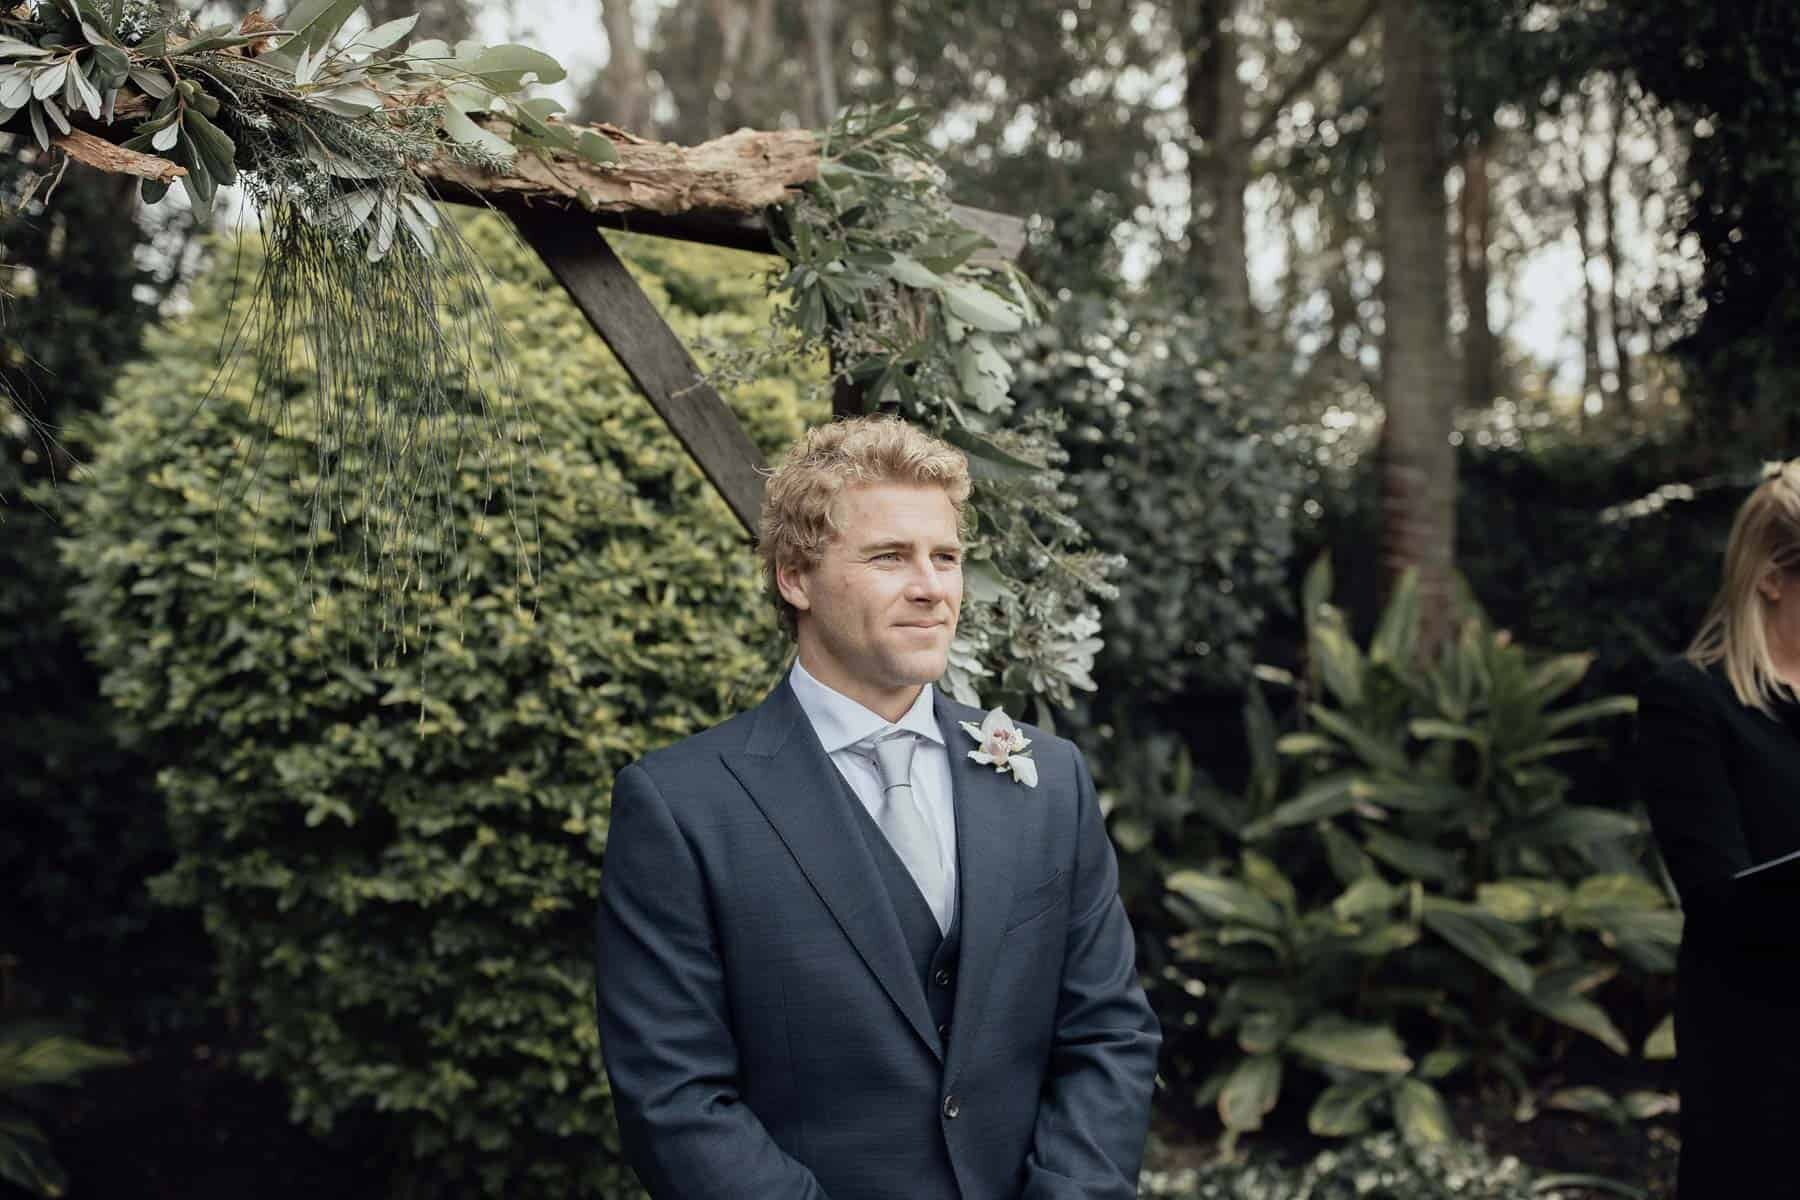 Modern backyard wedding with a gorgeous pregnant bride / photography by Jimmy Raper